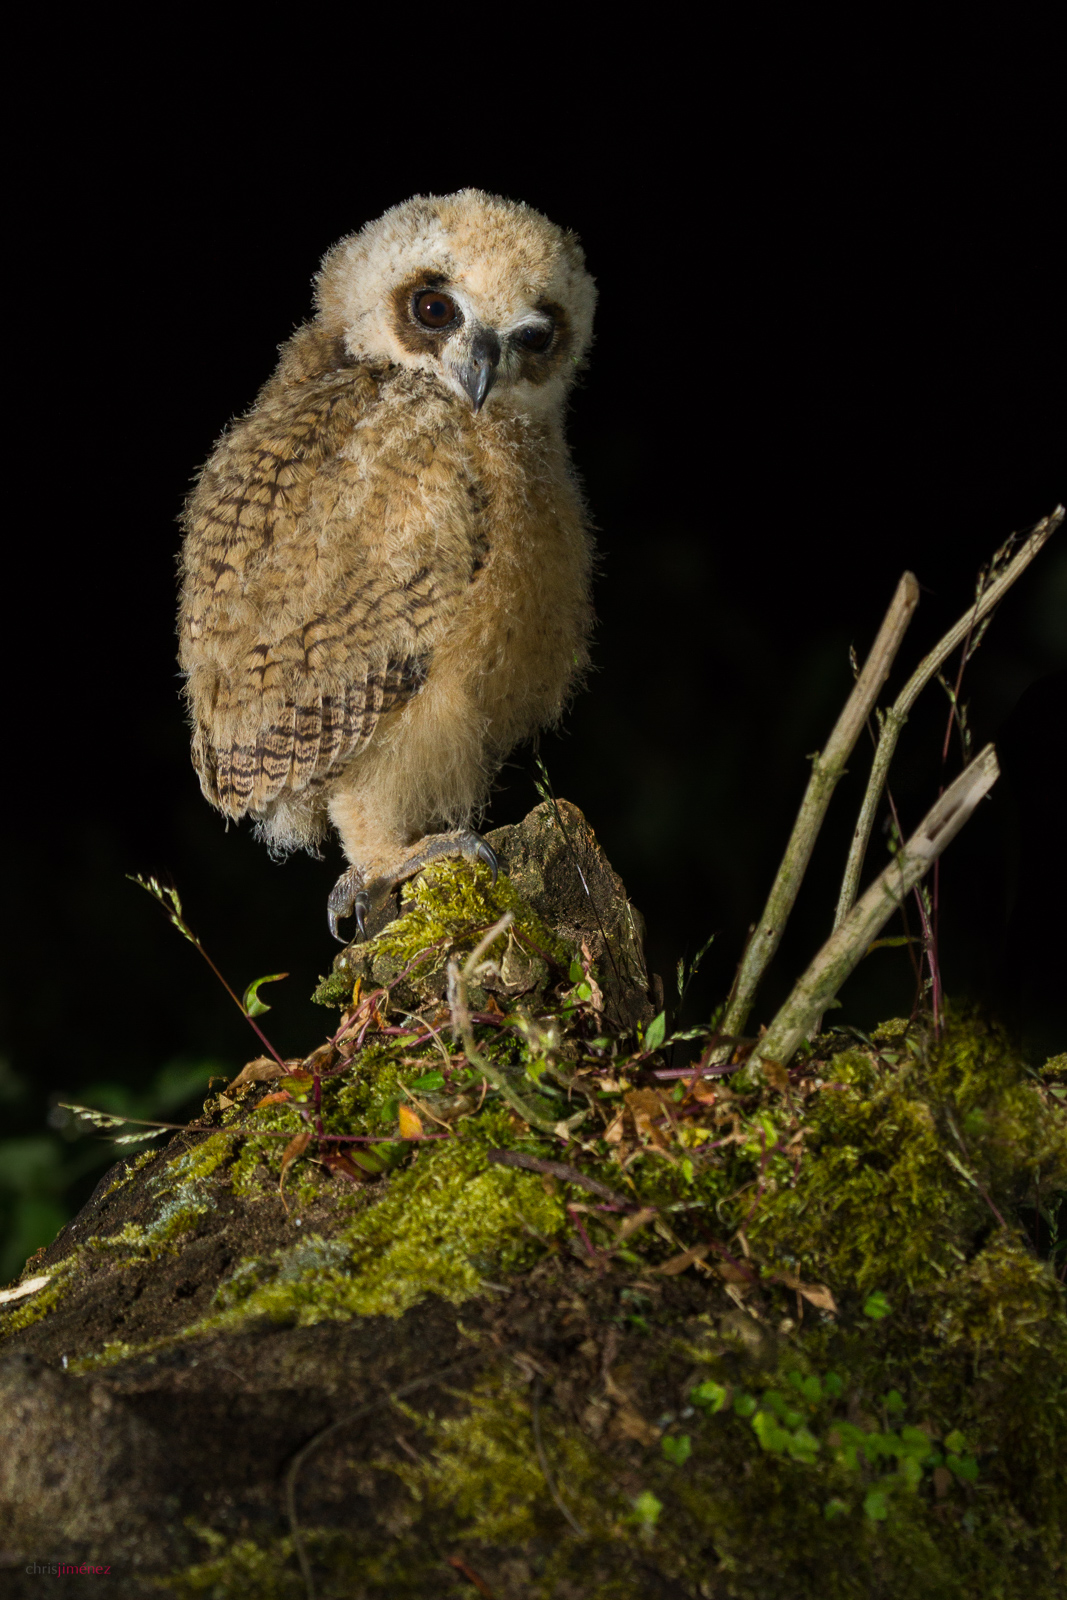 Striped Owl (Pseudoscops clamator) owlet, perched on mossy branch at night in Costa Rica.